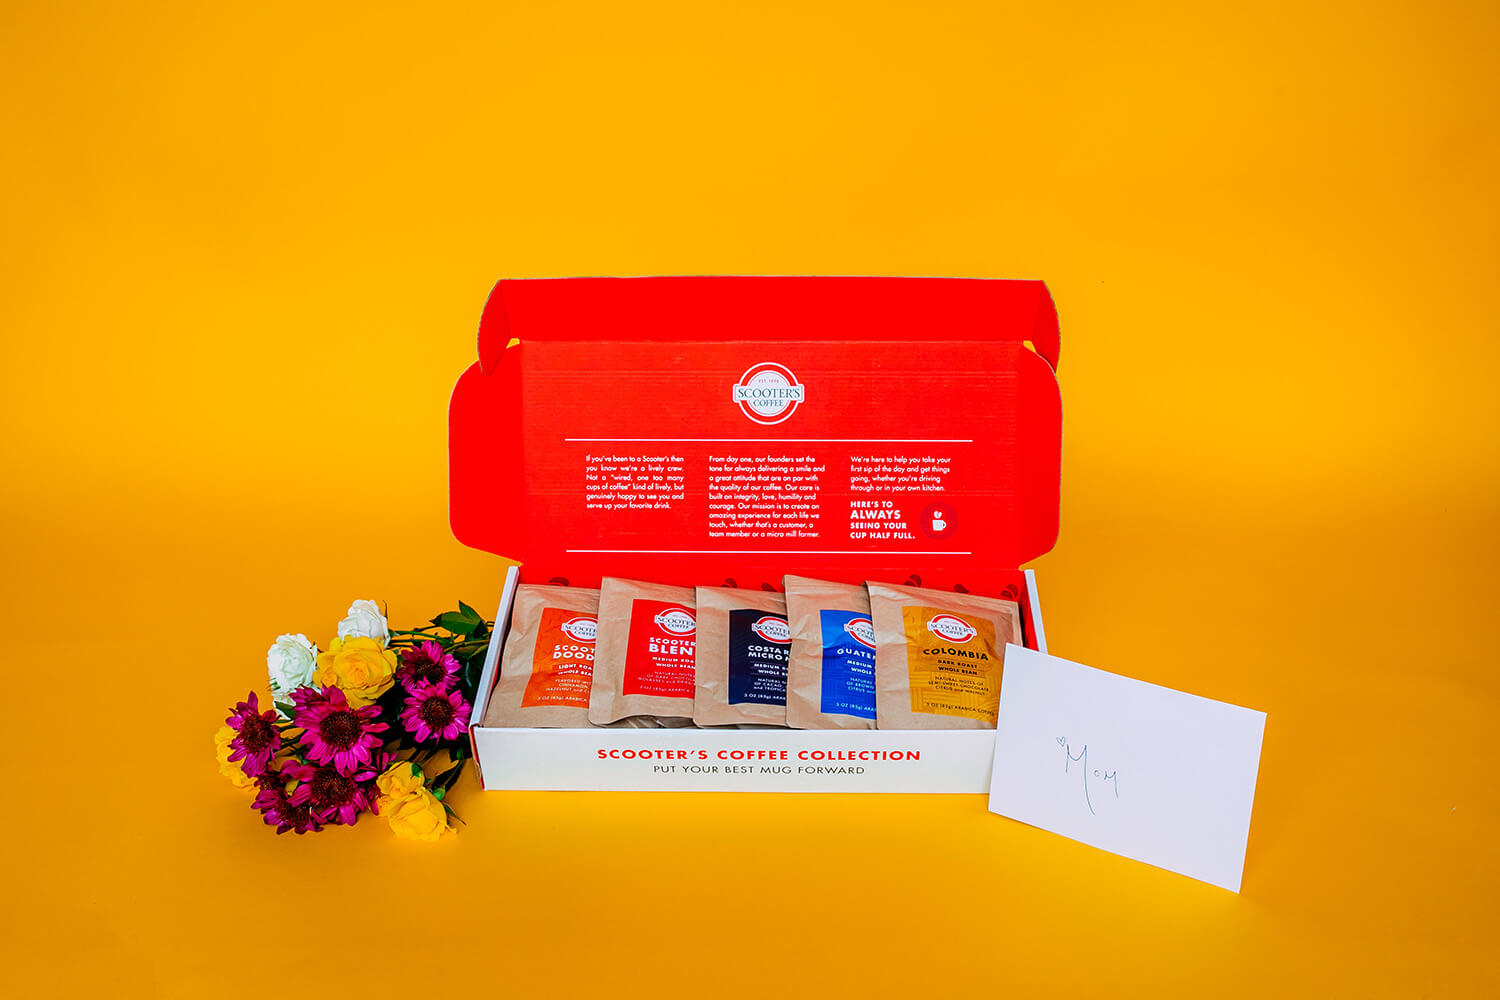 Coffee gift box on yellow background